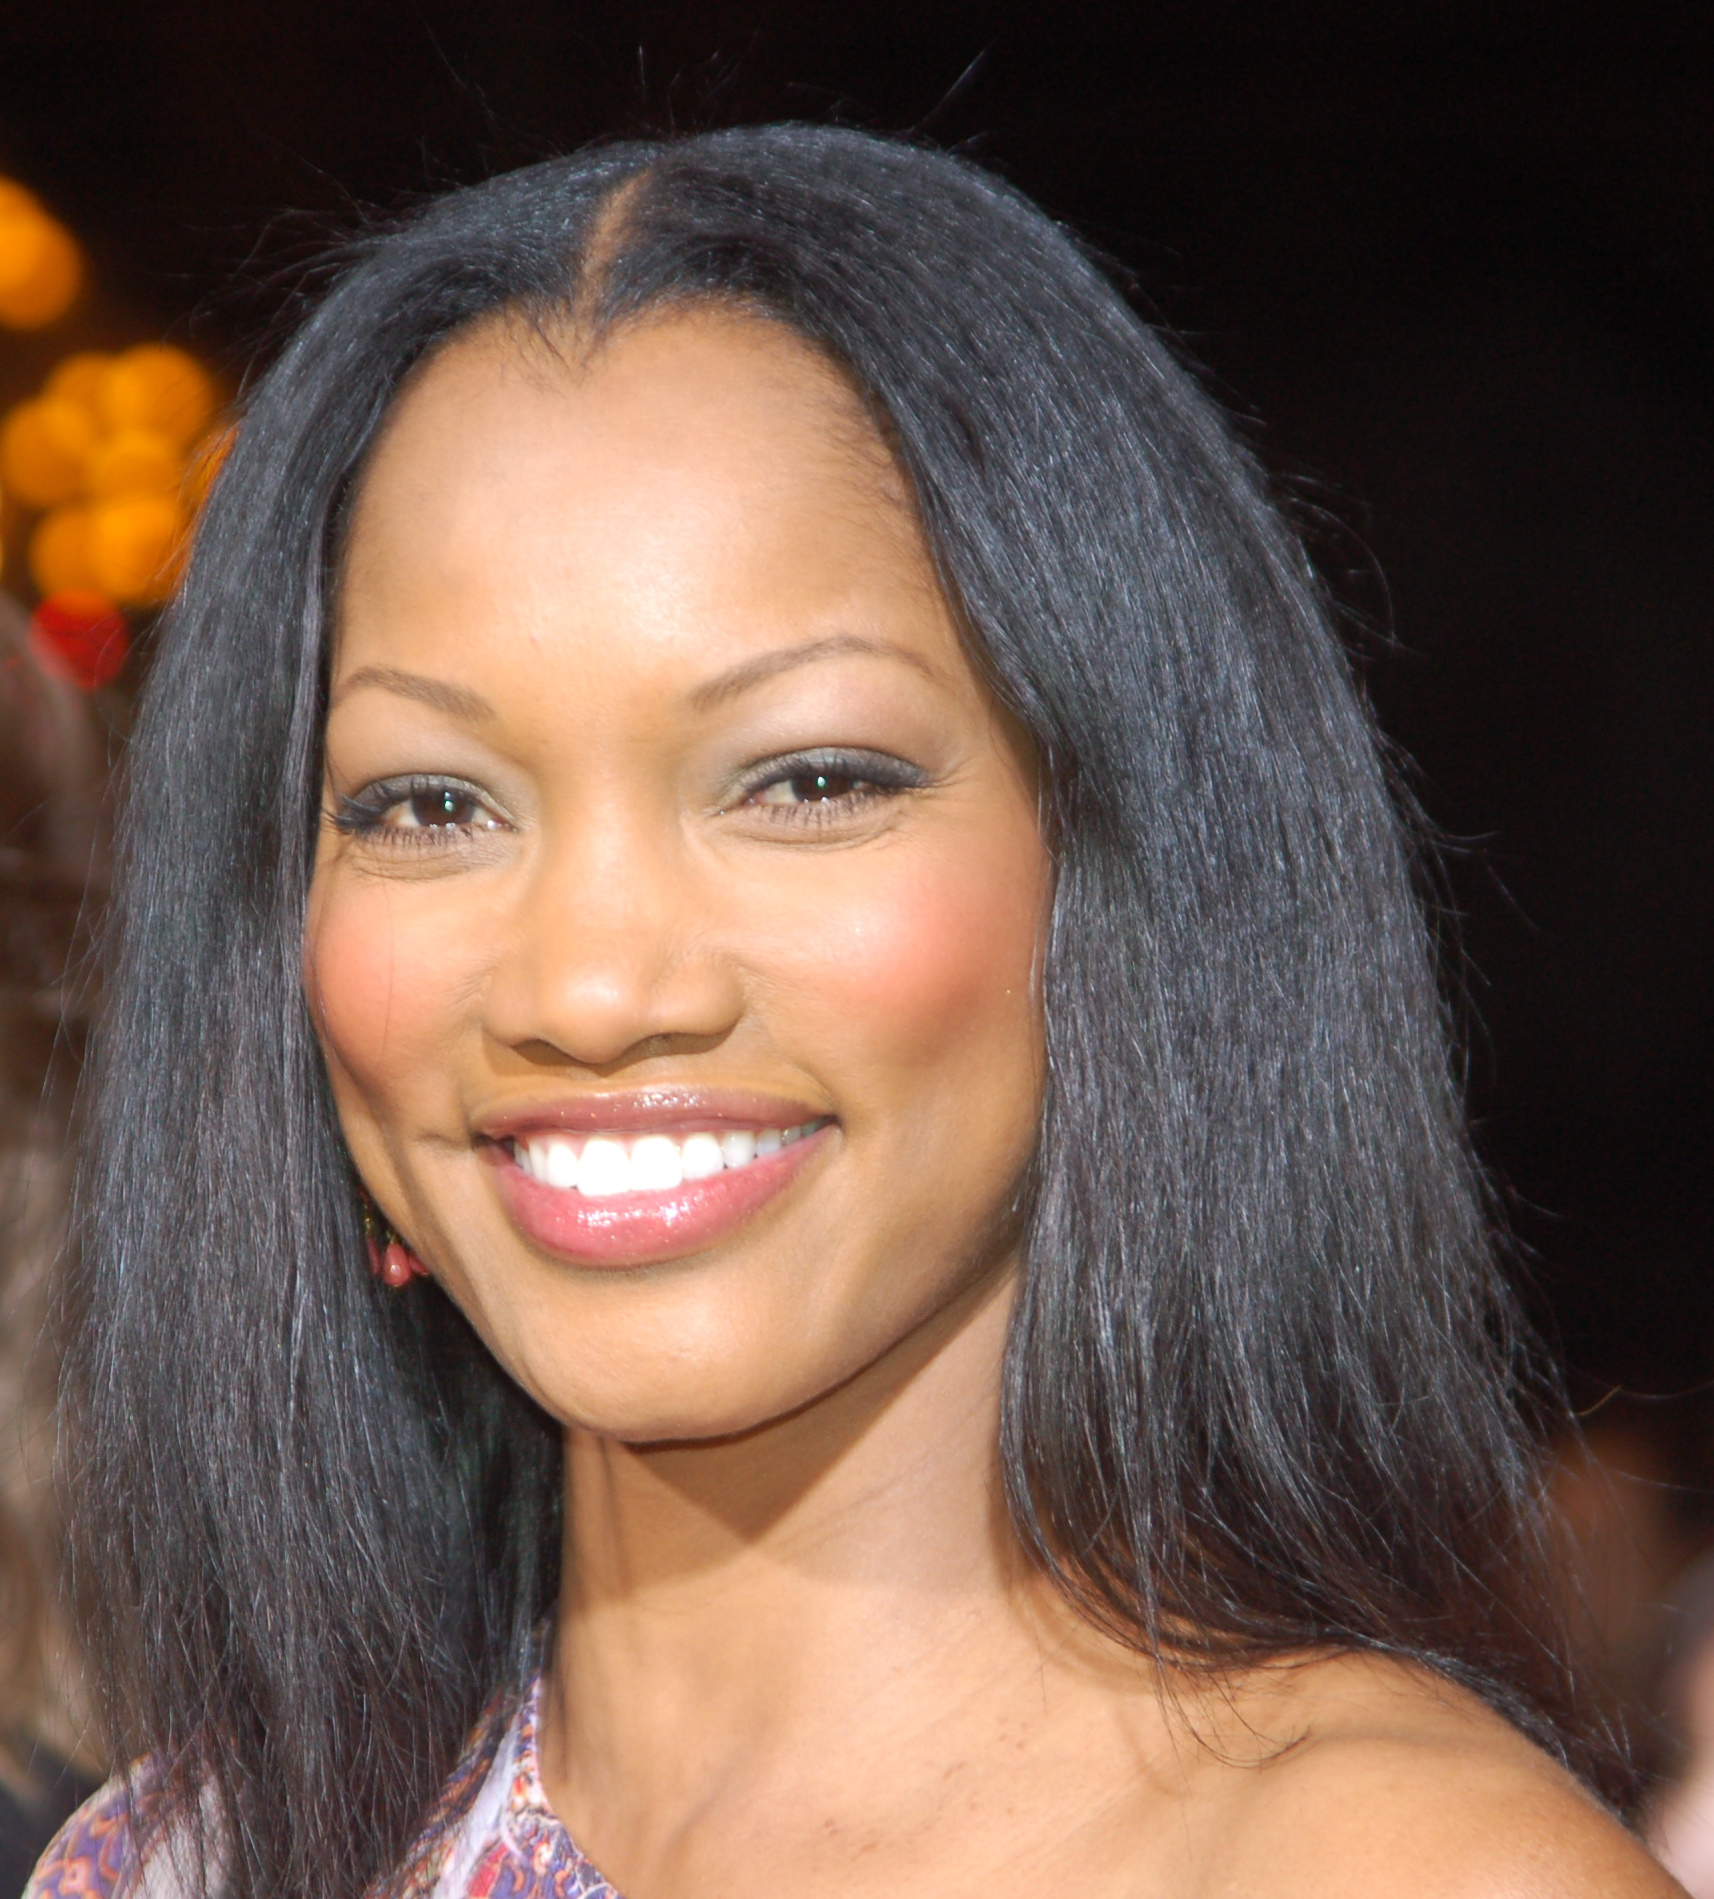 The 51-year old daughter of father Axel Jean Pierre and mother Marie-Claire Beauvais Garcelle Beauvais in 2018 photo. Garcelle Beauvais earned a  million dollar salary - leaving the net worth at 6 million in 2018